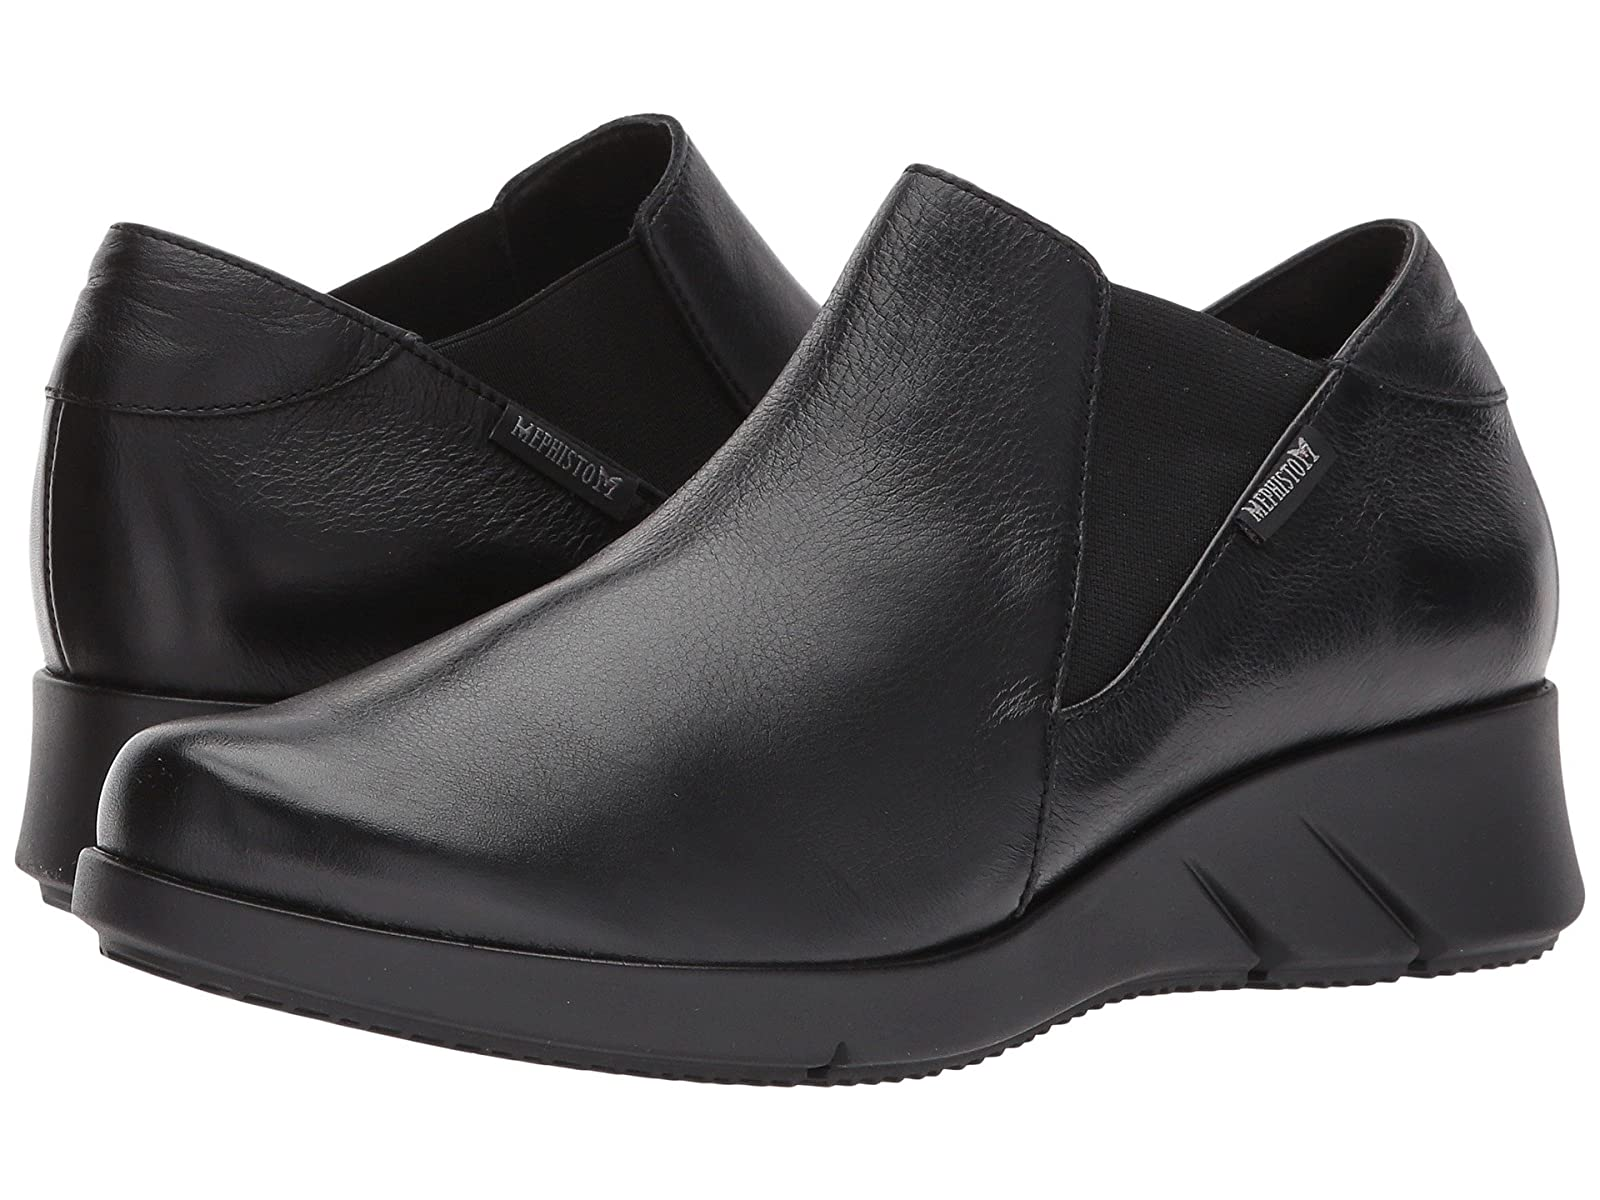 Mephisto MarineCheap and distinctive eye-catching shoes